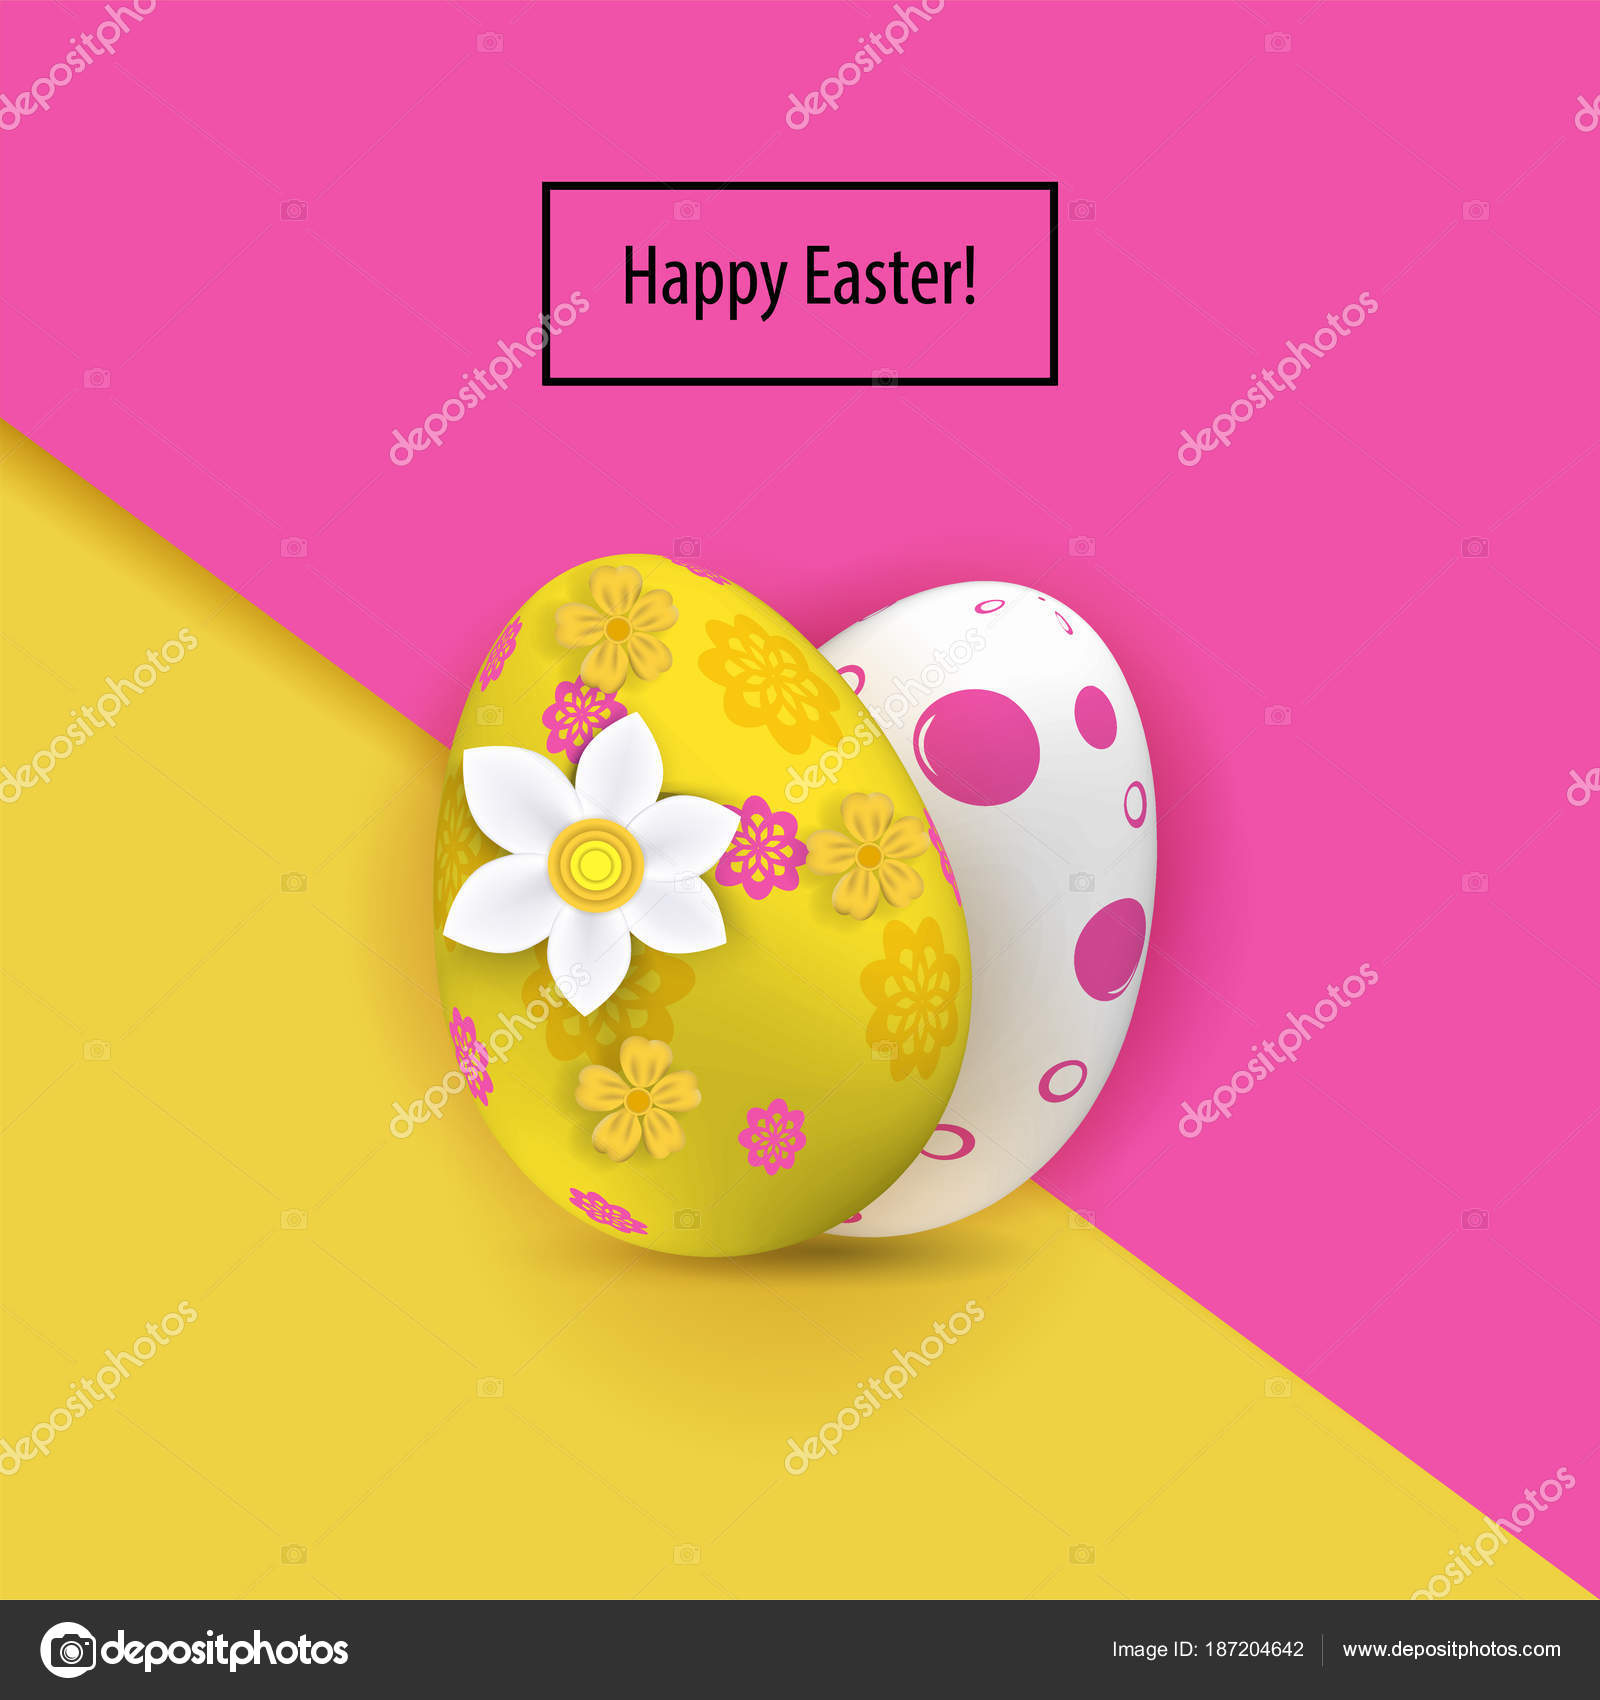 Yellow White Two Easter Eggs On The Pink Paper Background